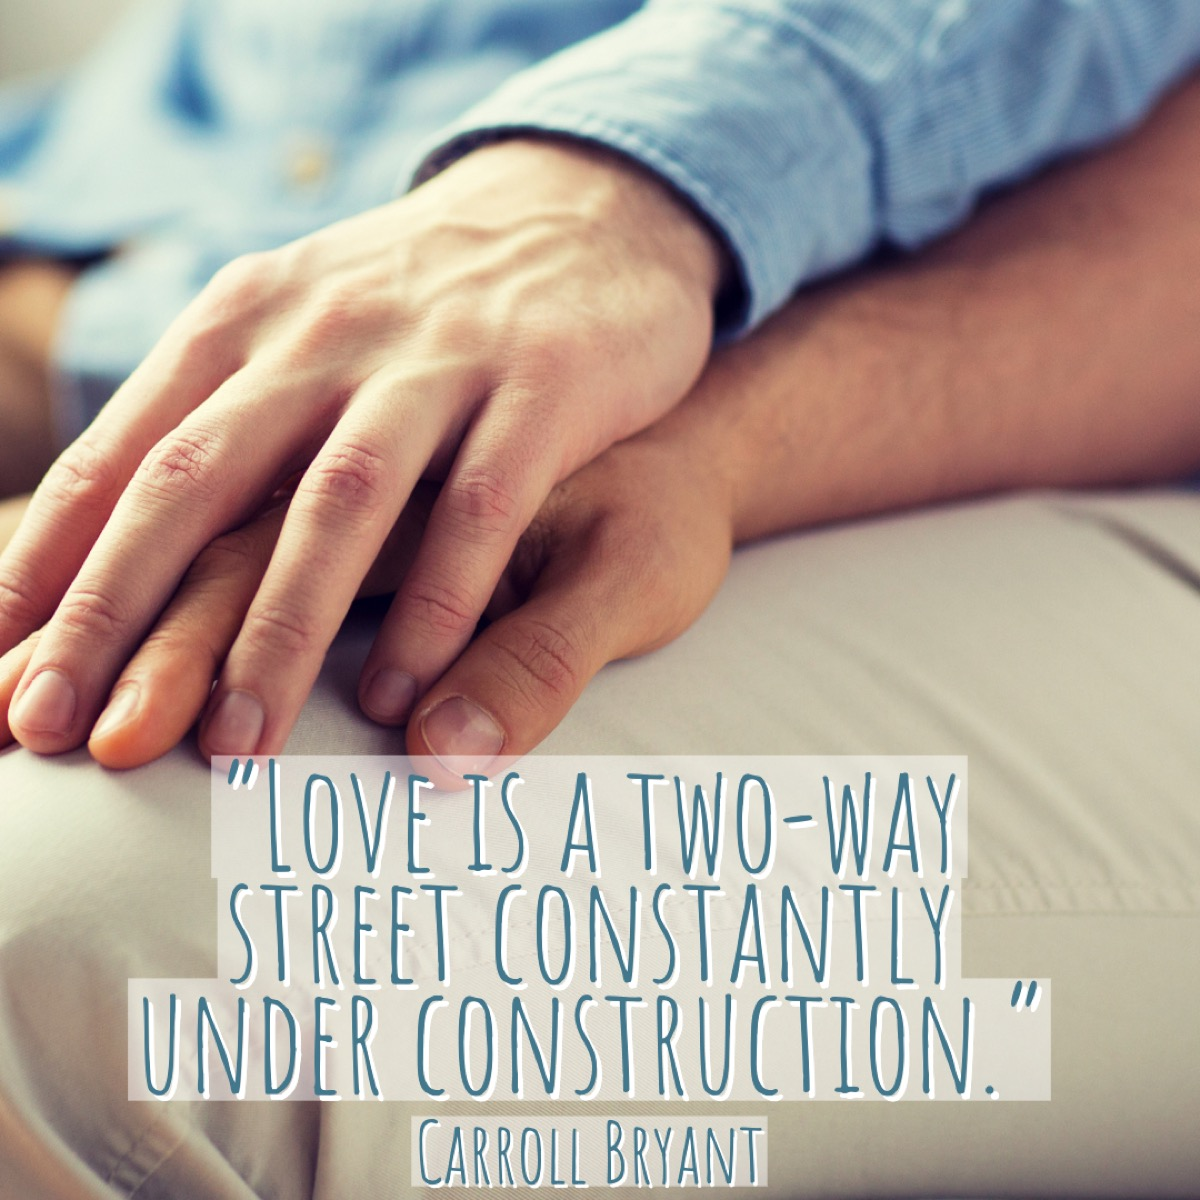 Carroll Bryant relationship quote